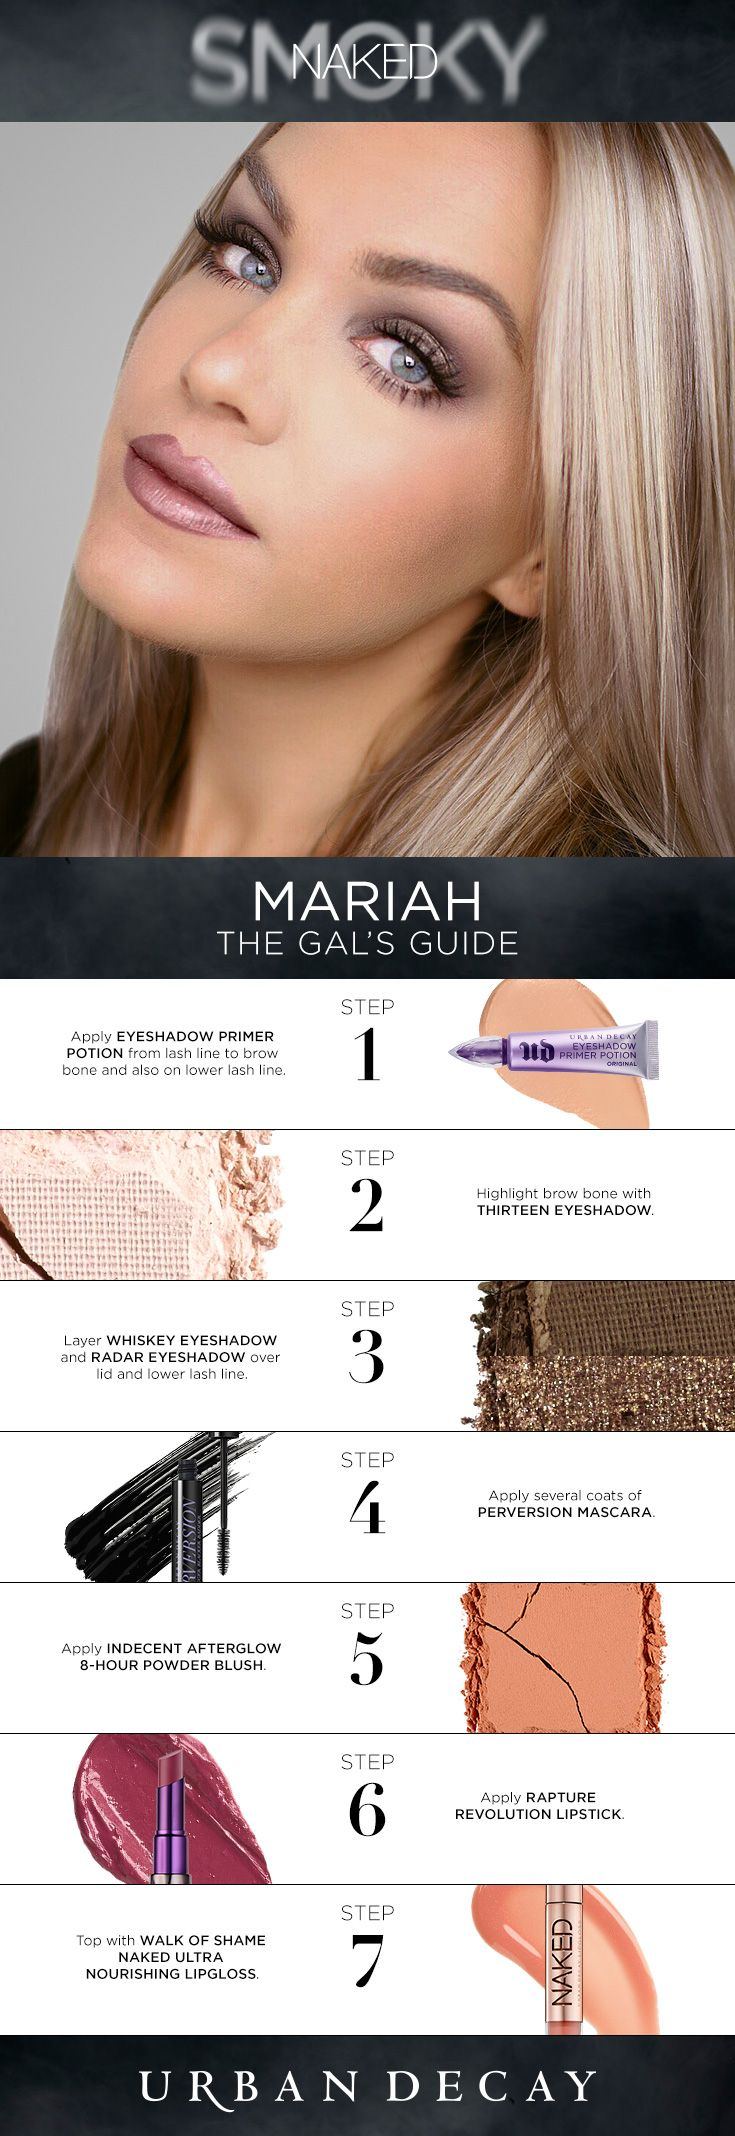 """""""The inspiration behind this look is the modern supermodel. I love that chic, effortless, hazy smoky eye with a hint of glint, topped off with a glossy lip. It's a look that can be worn anywhere and with anything, whether it be on a romantic date or girls' night out."""" -Mariah"""